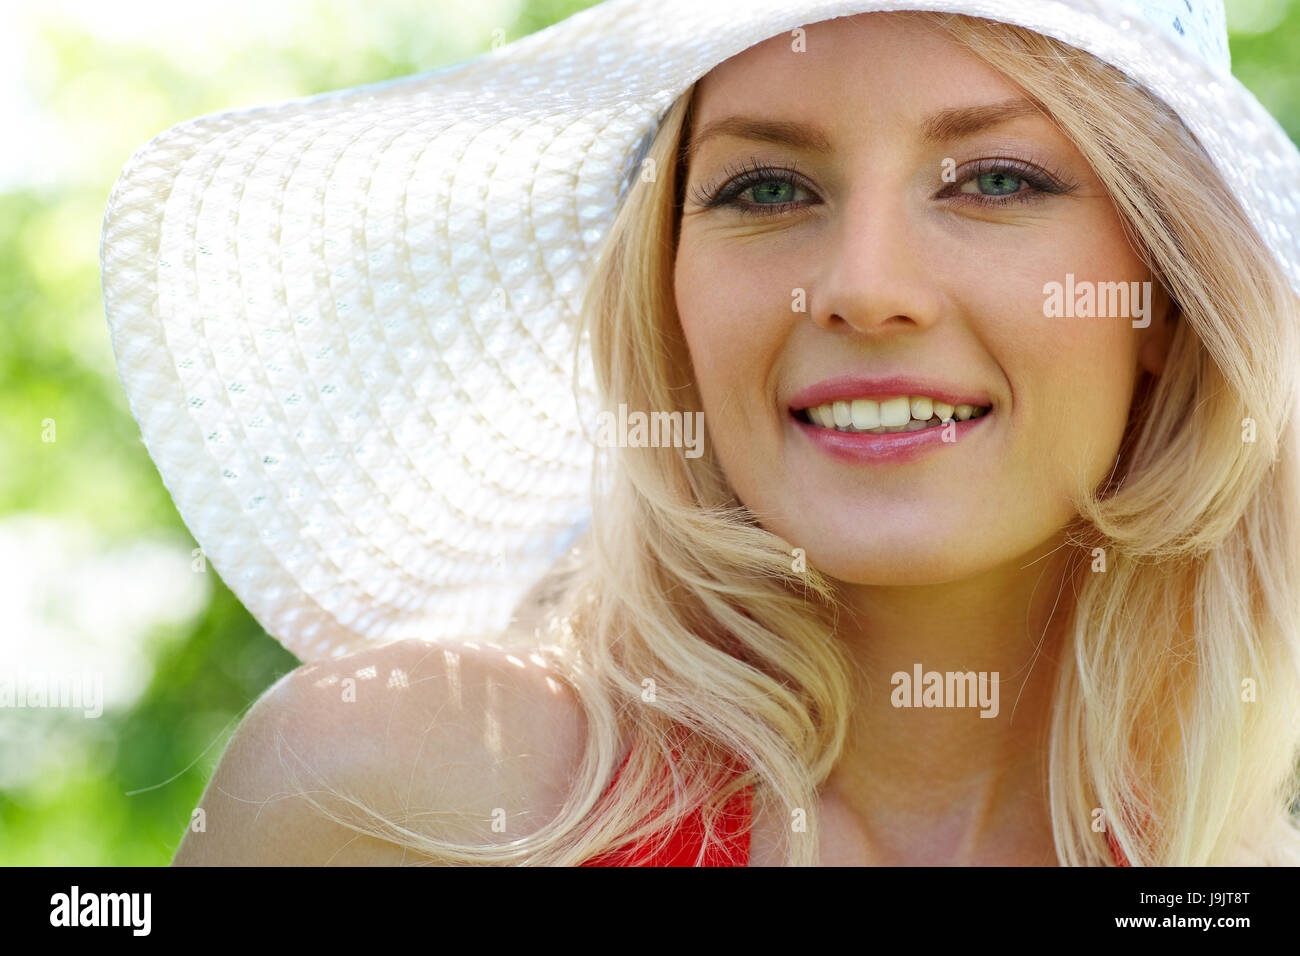 woman, humans, human beings, people, folk, persons, human, human being, laugh, - Stock Image